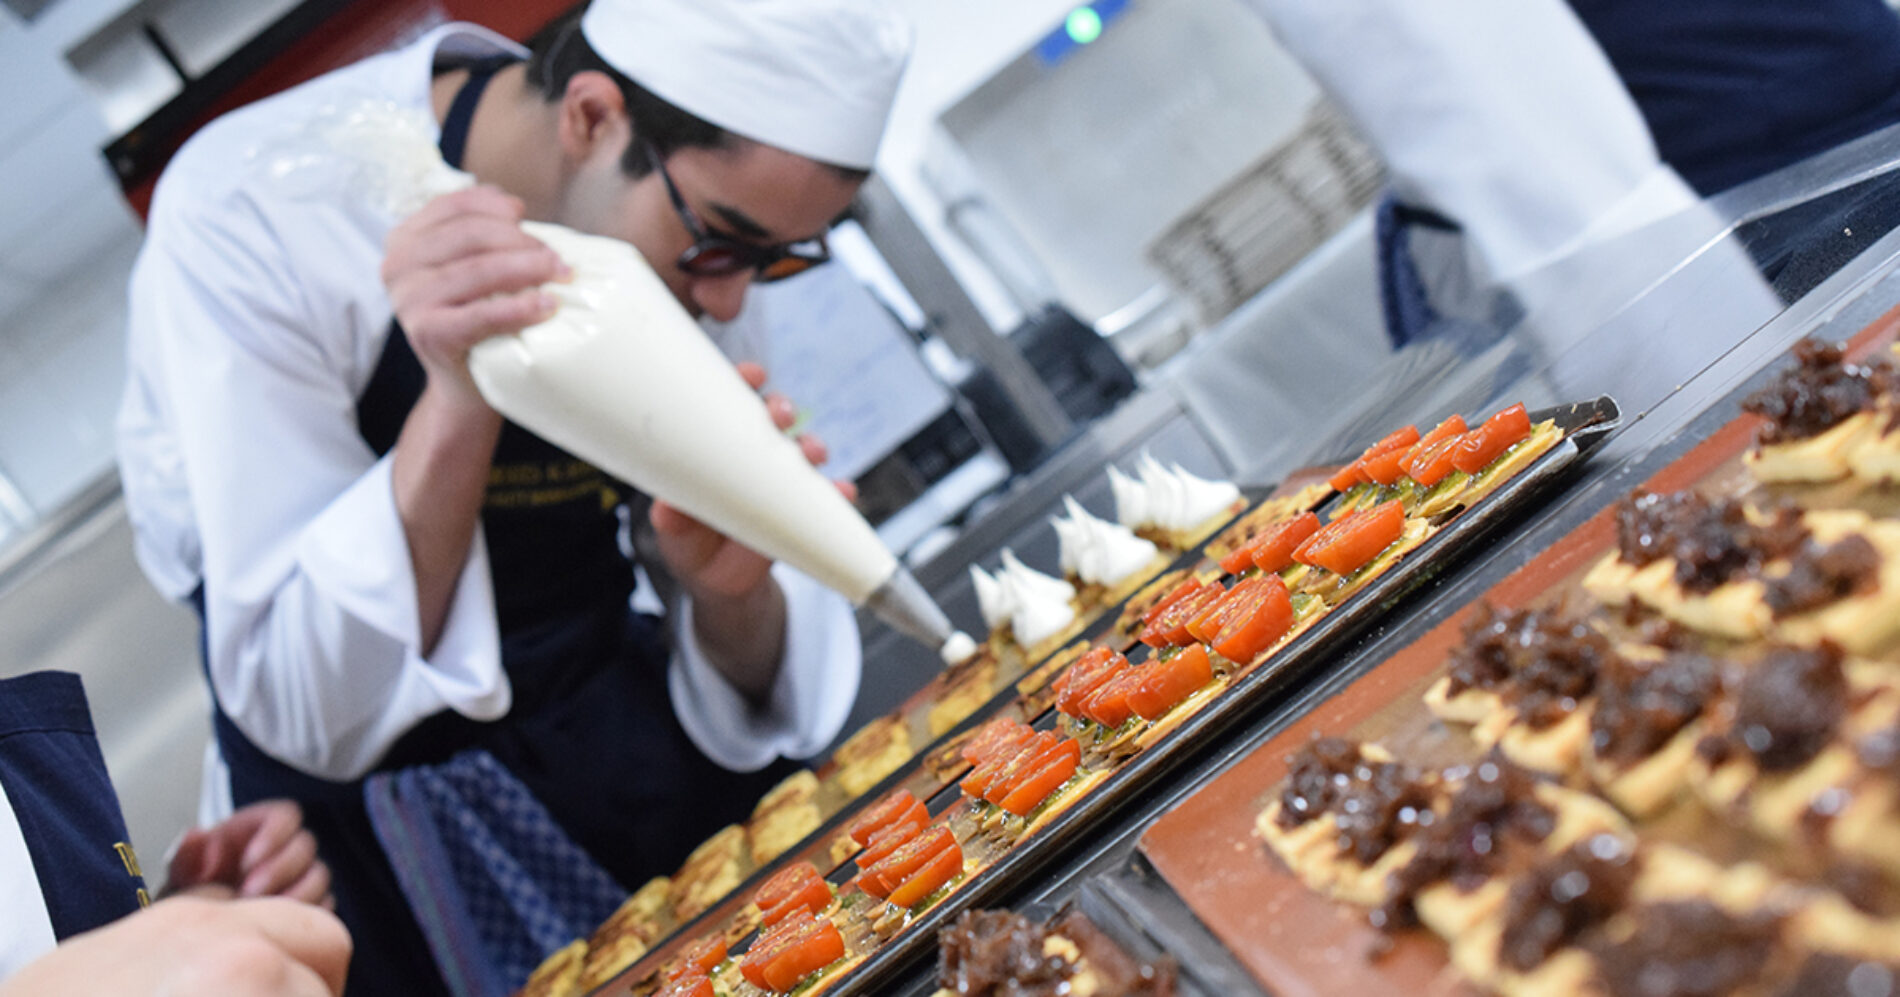 Francesco Acquaviva, Emirates Academy join forces for night of gastronomy